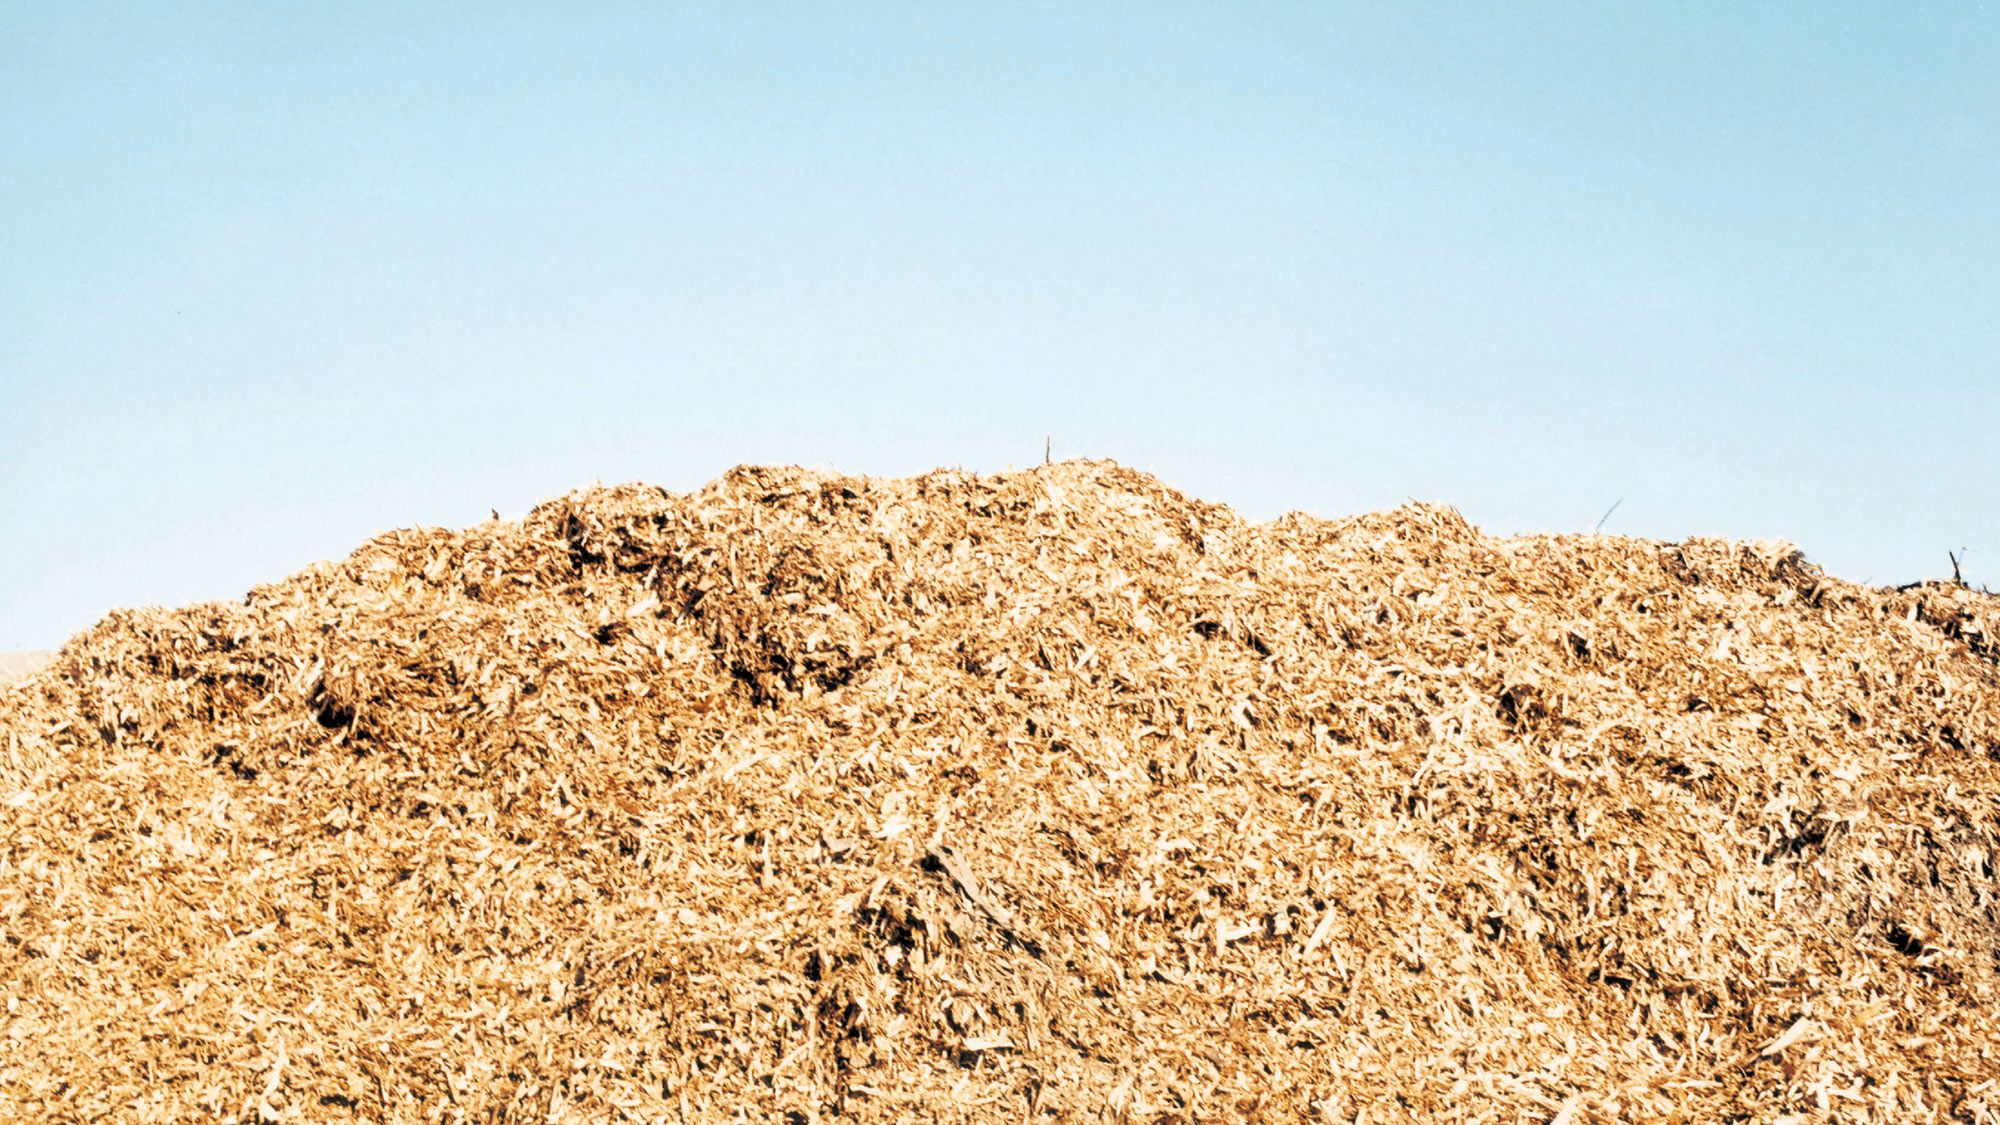 Waste recycling and recovery